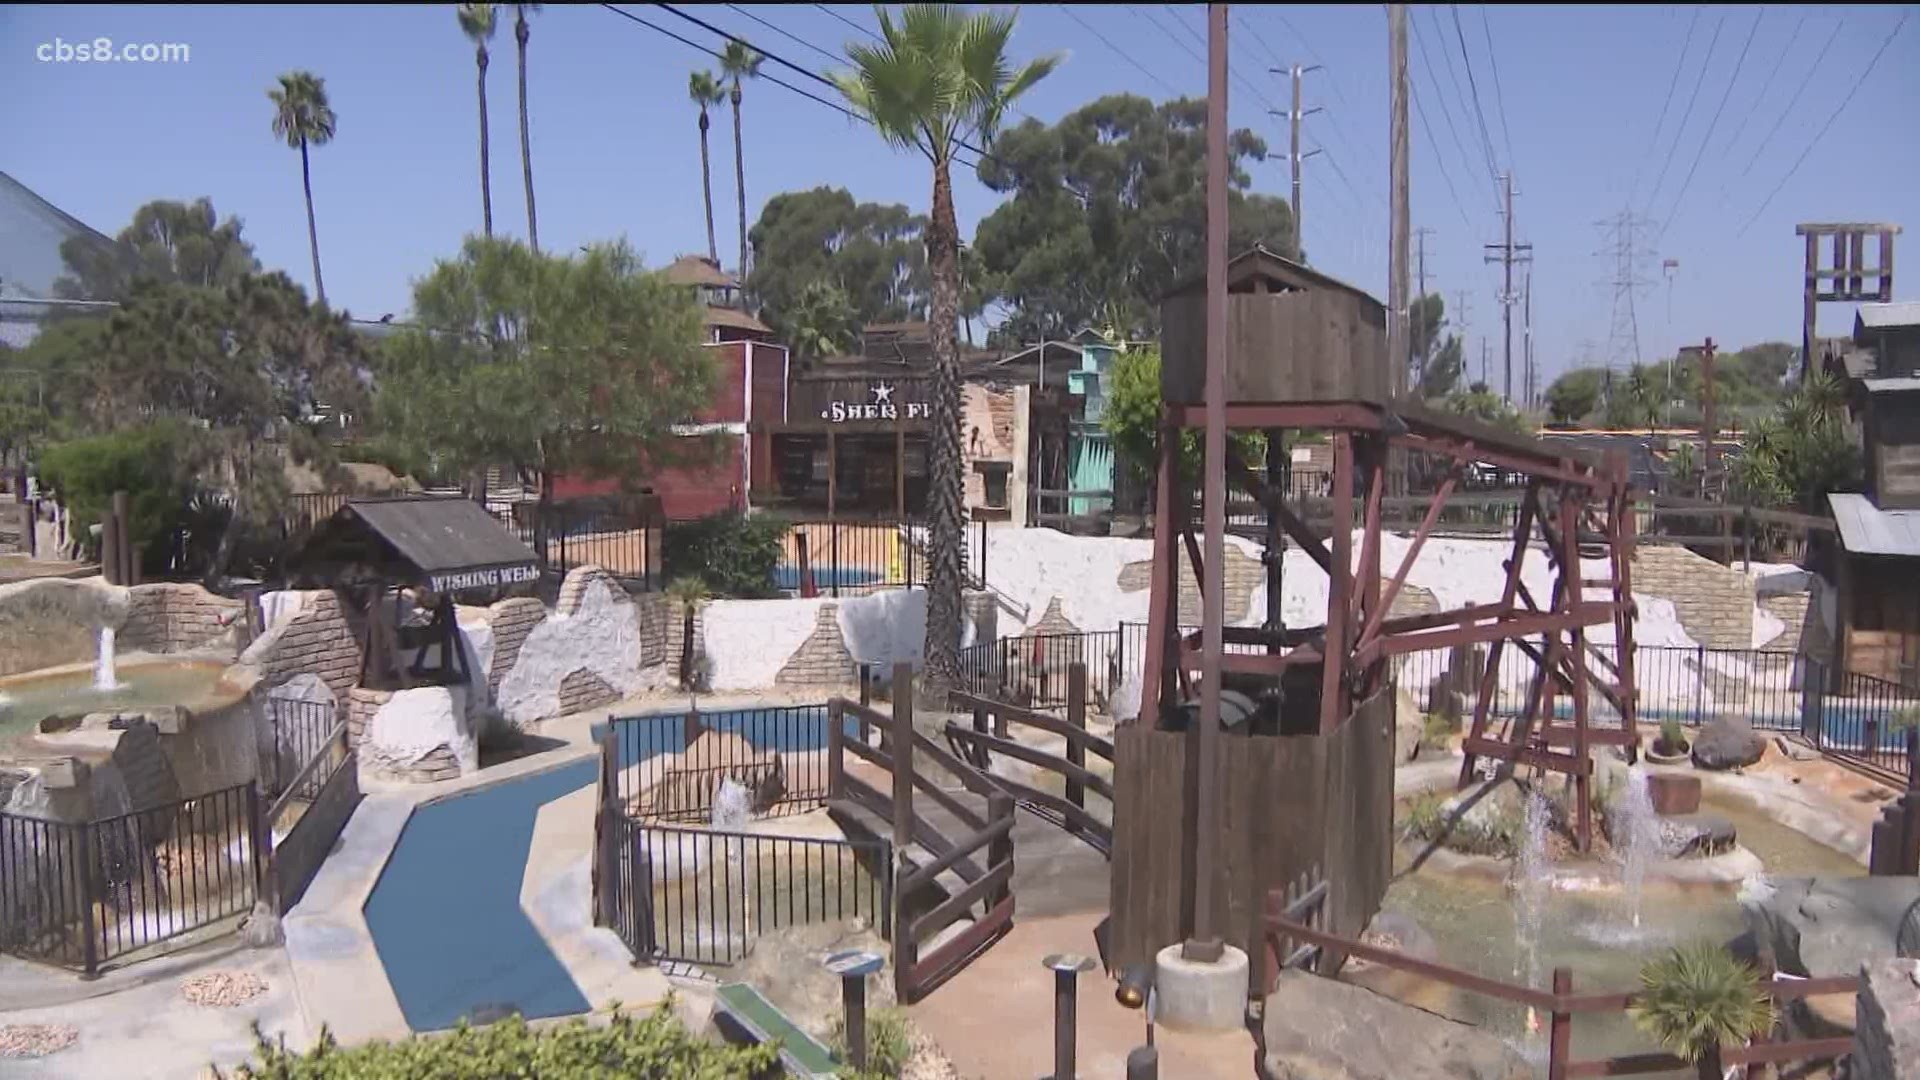 Family Fun Center Reopens In San Diego After 22 Years Cbs8 Com